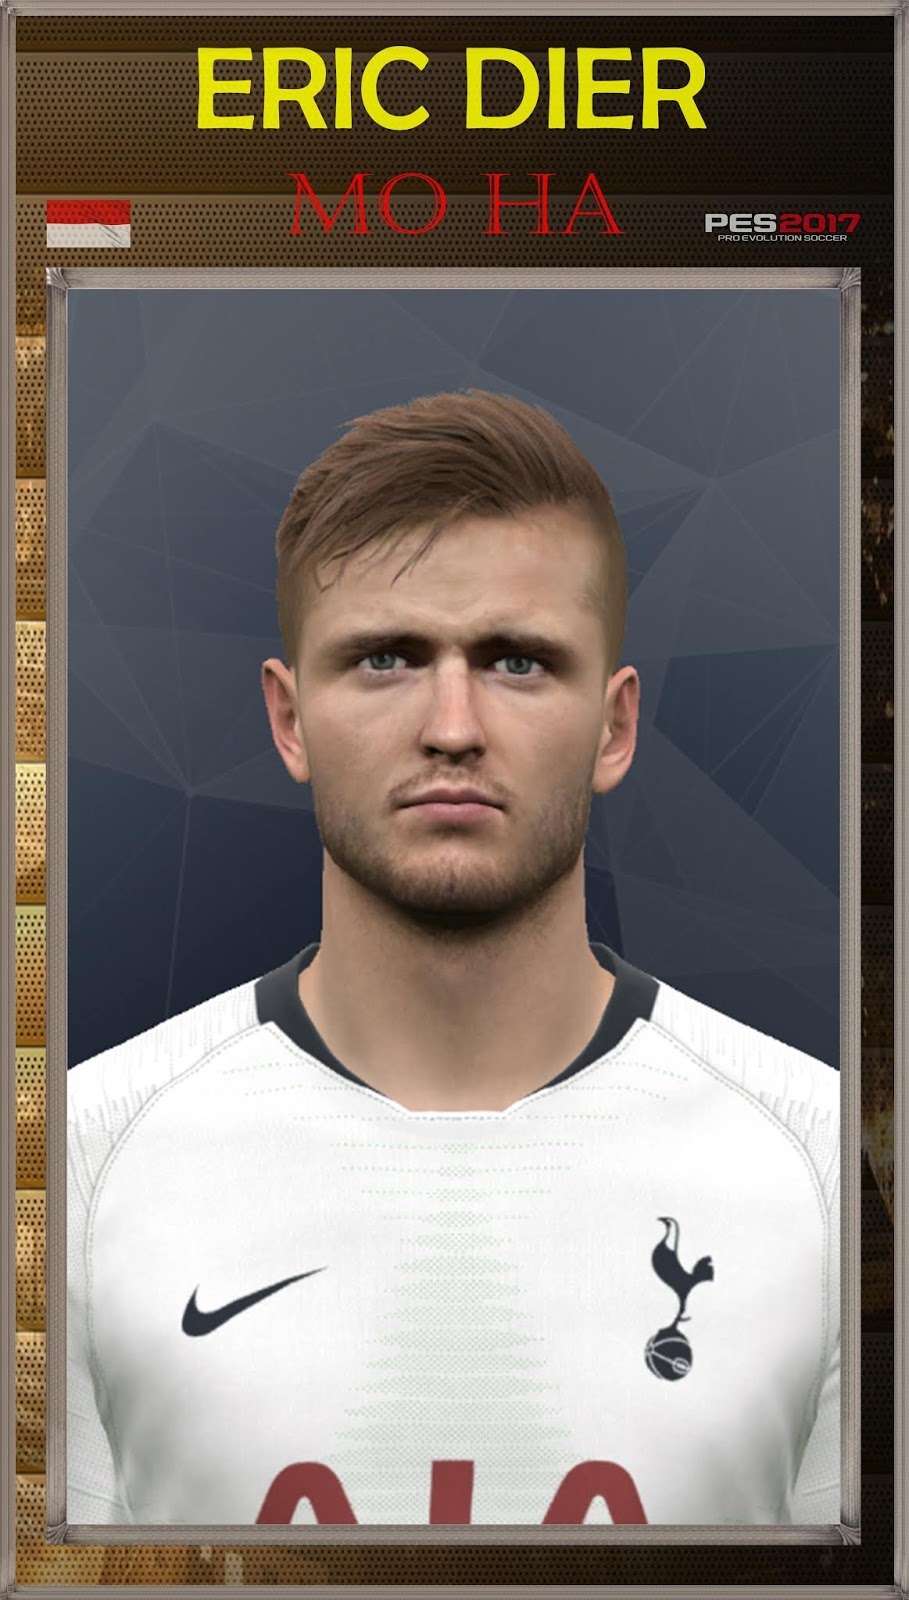 Pes 2017 Eric Dier face by Mo Ha